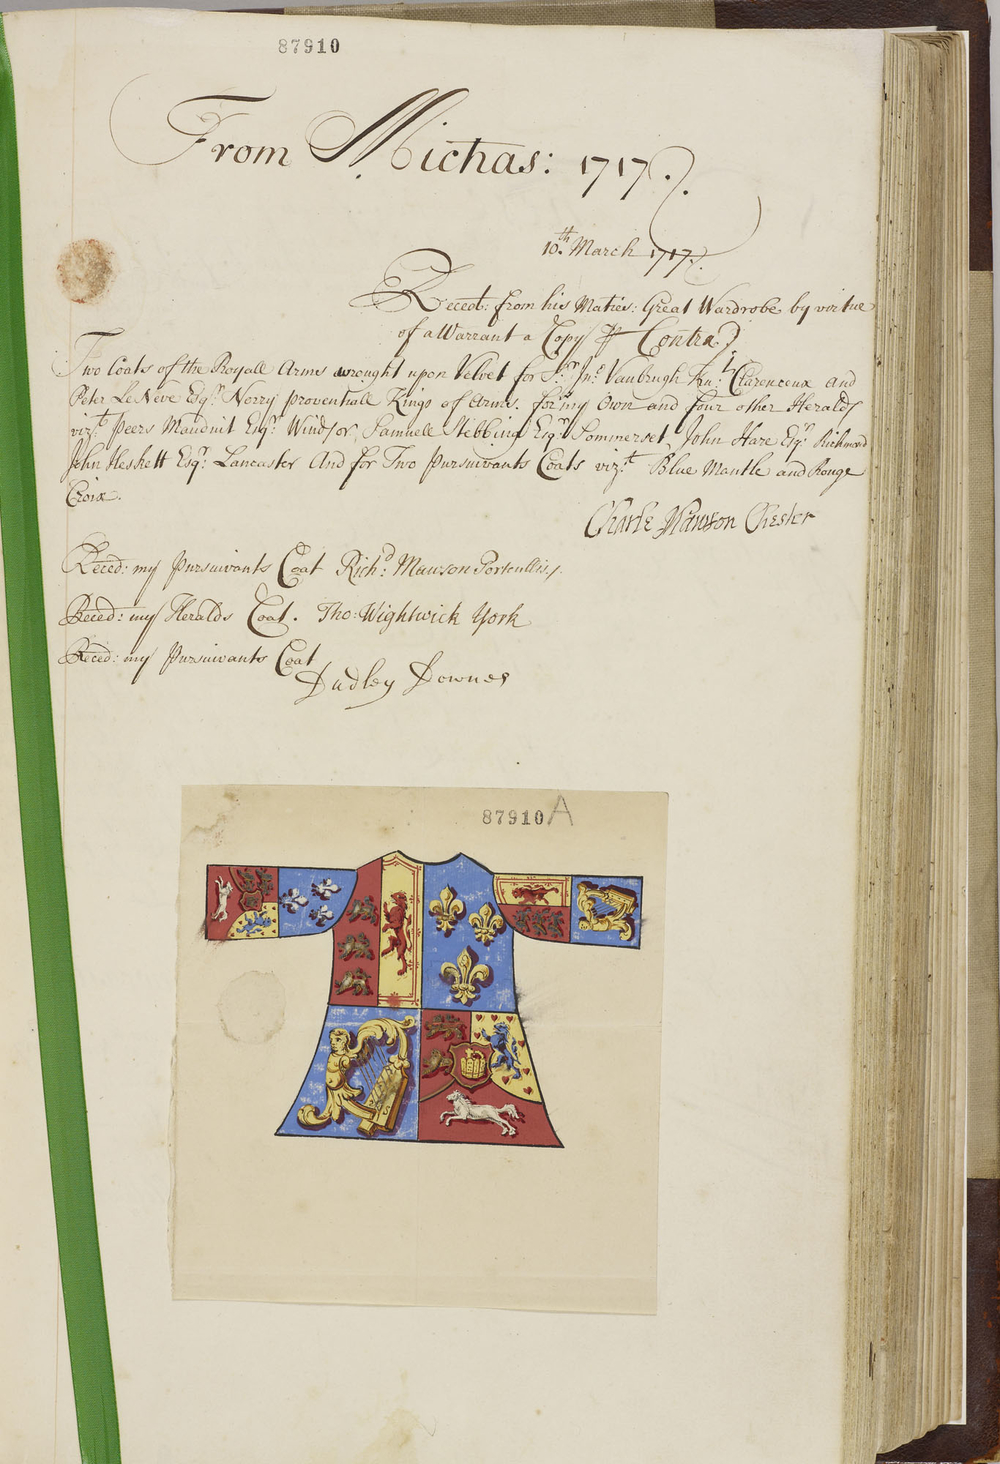 Page 19, copy receipt for tabards for officers in the College of Arms, with coloured drawing of the tabard, bearing the Royal Arms, March 1717